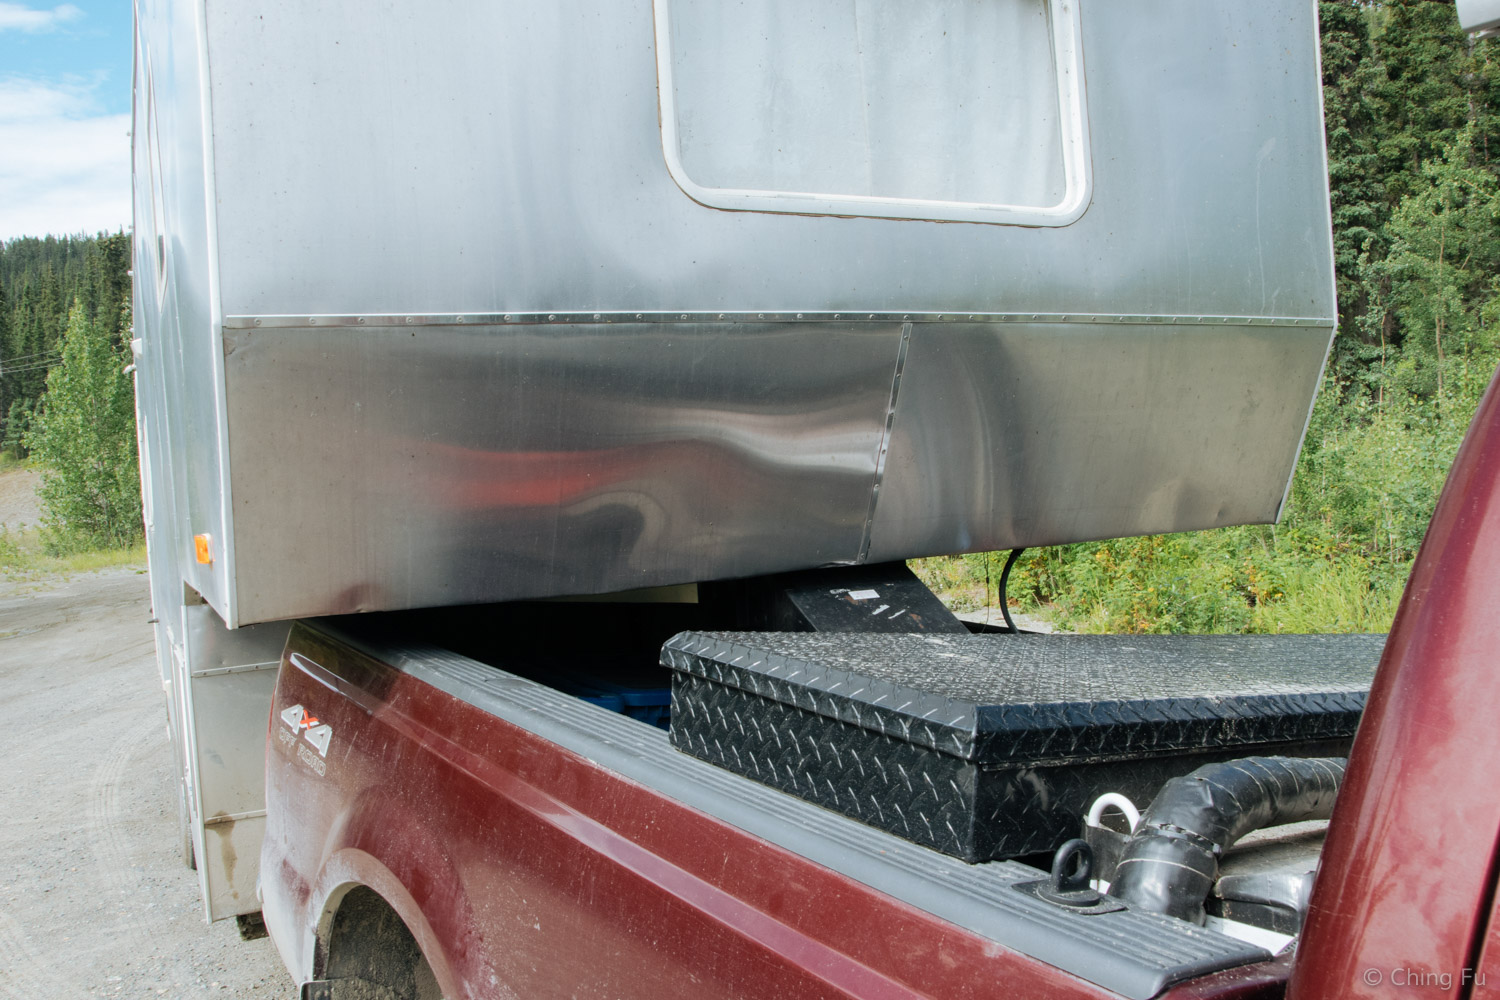 The truck's bed is within an inch of touching the trailer on the left side of this photo, but has a foot of gap on the right side. Blow it up and you can see some dents in the Toaster in those areas...